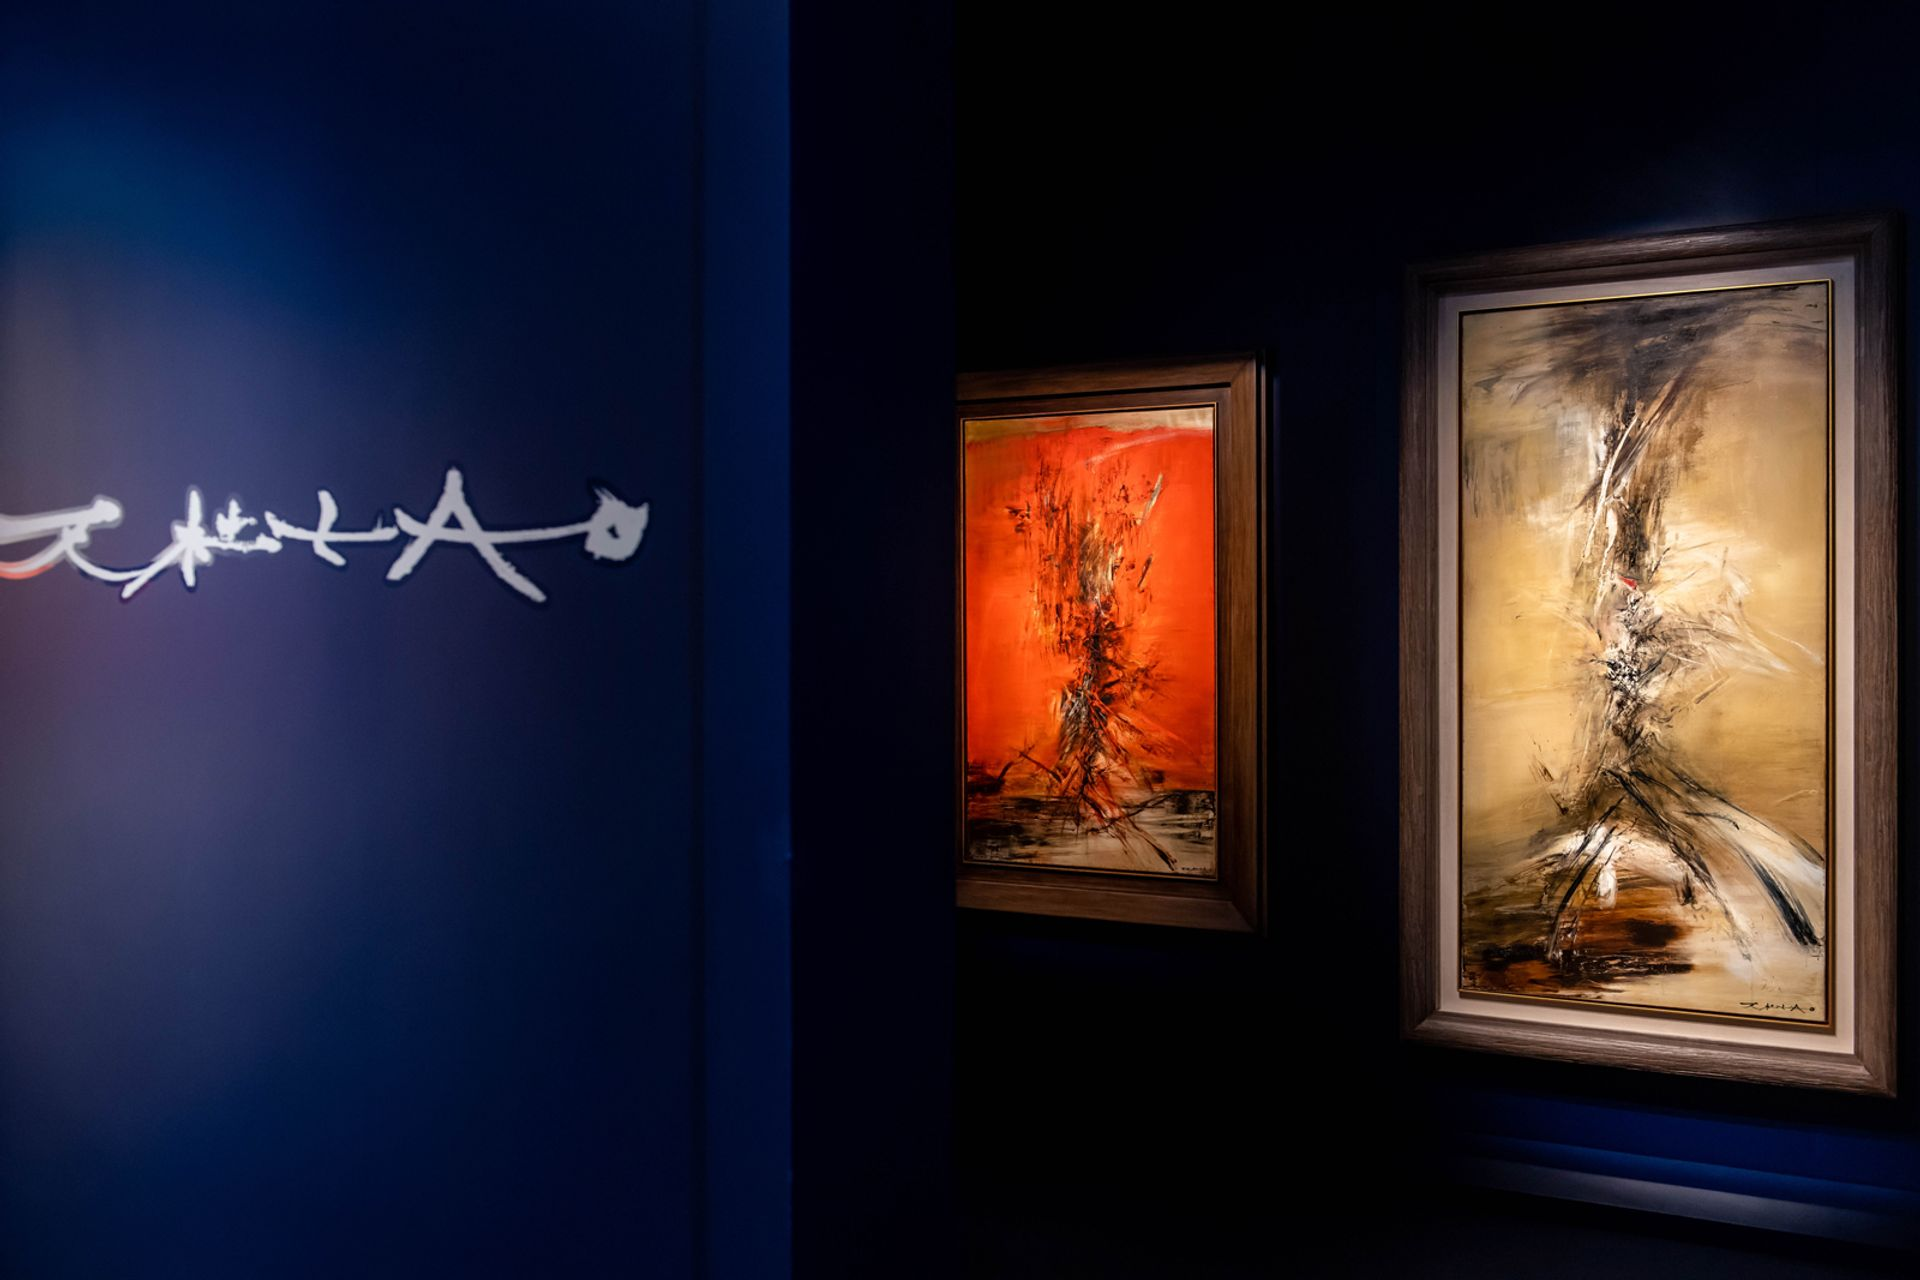 Two works by Zao Wou-Ki from the artist's Hurricane Period, 22.6.63 and 24.10.63 were sold for a total of HK$100m at Phillips last week Image courtesy of Phillips